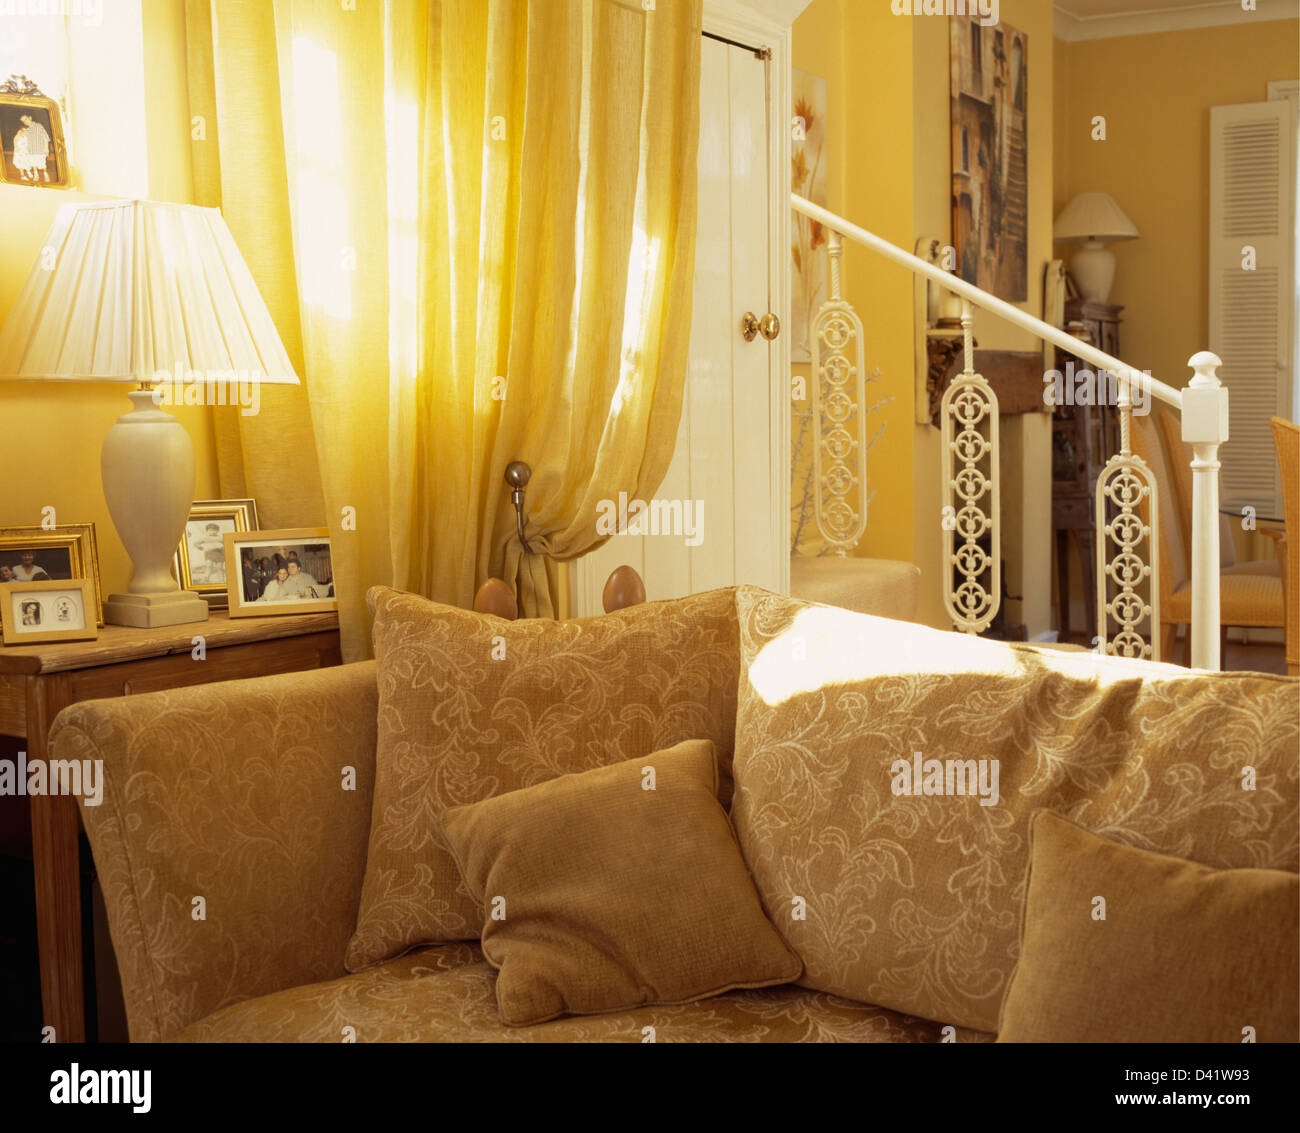 Pale Yellow Door Curtain Beside Beige Patterned Sofa With Matching Stock Photo Royalty Free